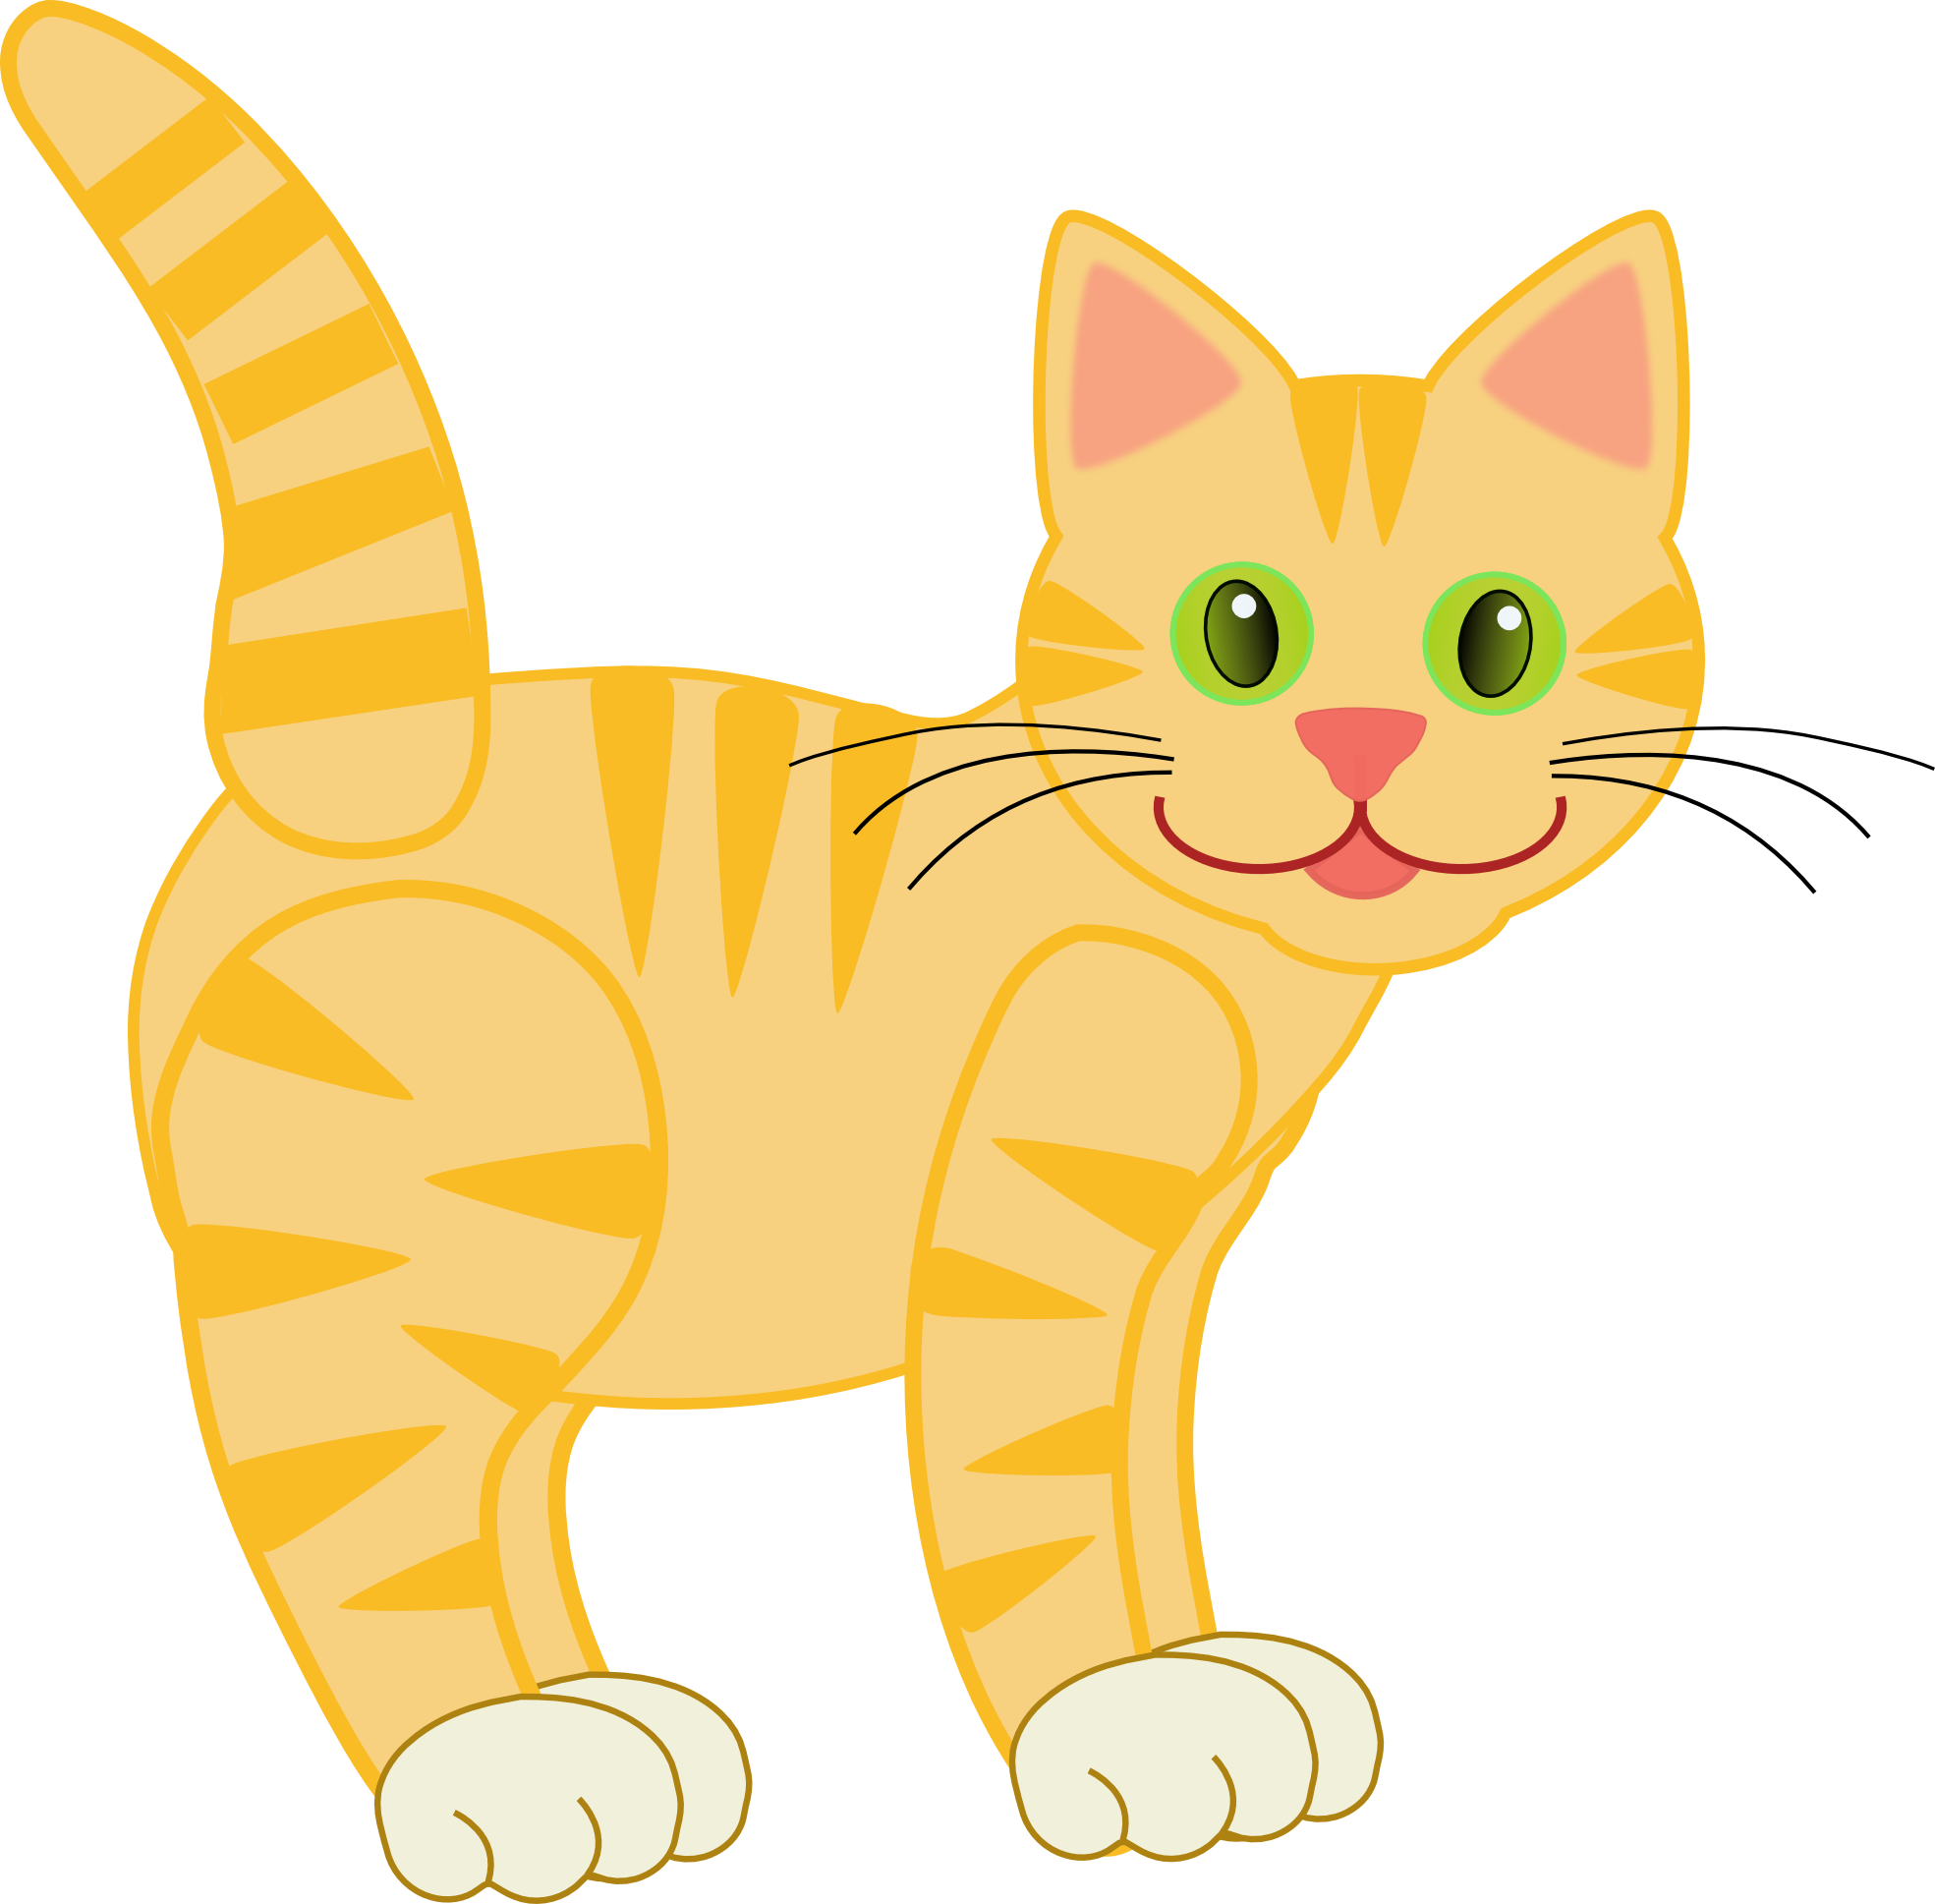 clip art version2 yellow tiger cat 15 10 8 pinterest clip art rh pinterest com clipart cats for free clipart cat eyes